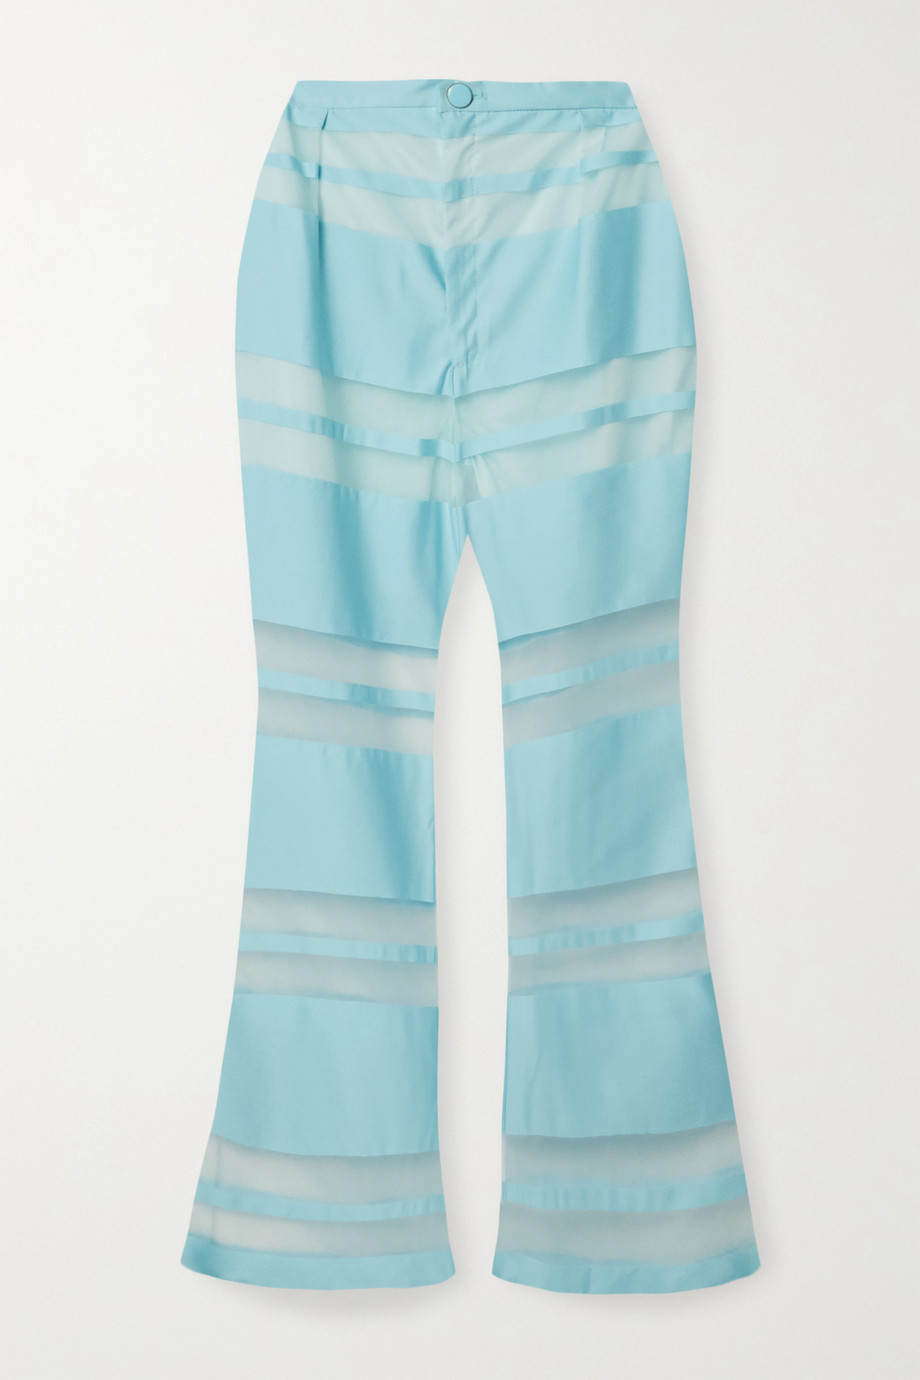 Cult Gaia Vivien striped satin-jacquard flared pants